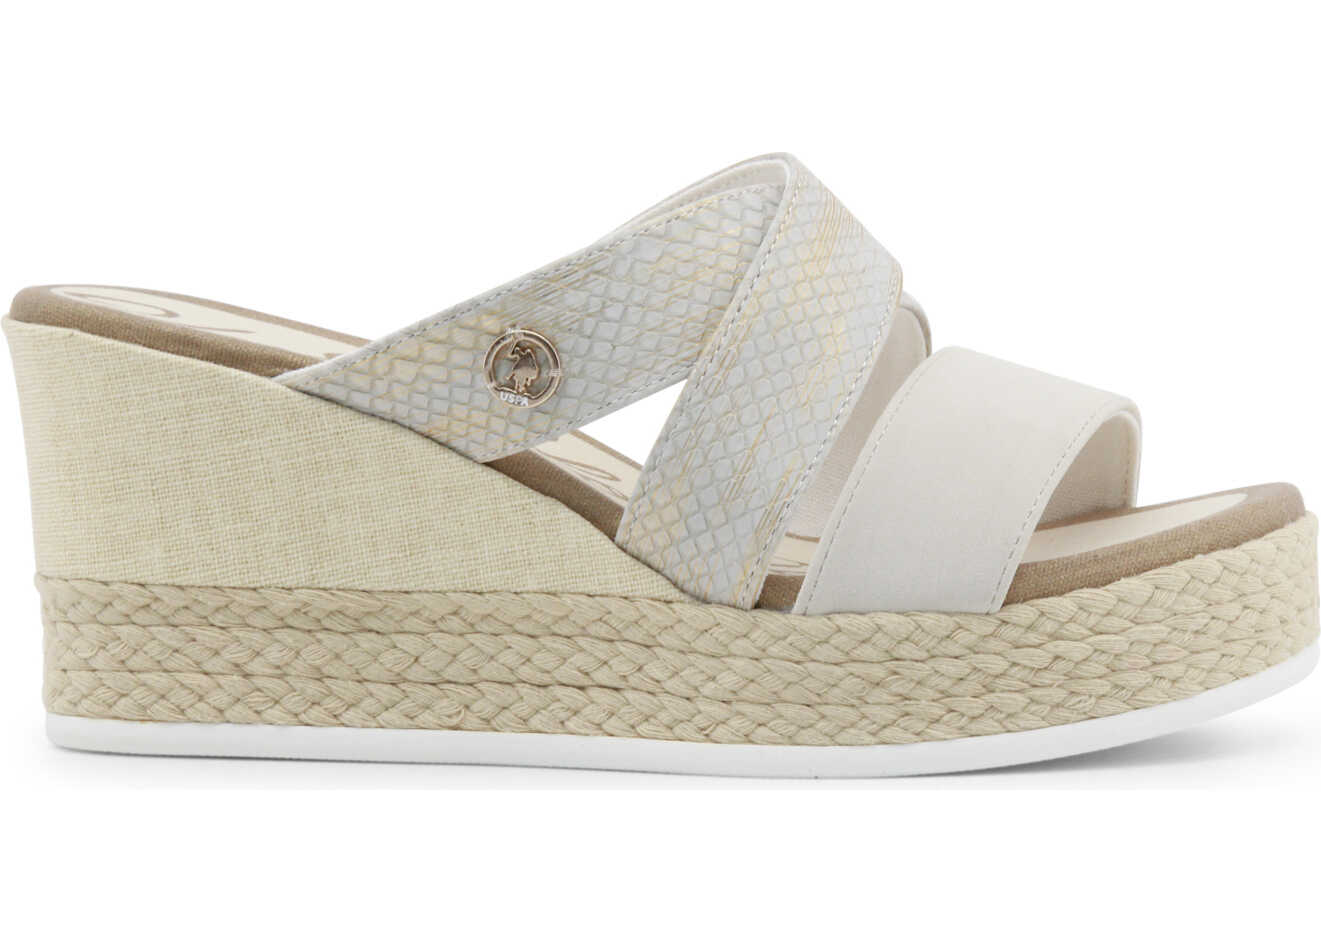 U.S. POLO ASSN. Donet4155S8_Y2 BROWN